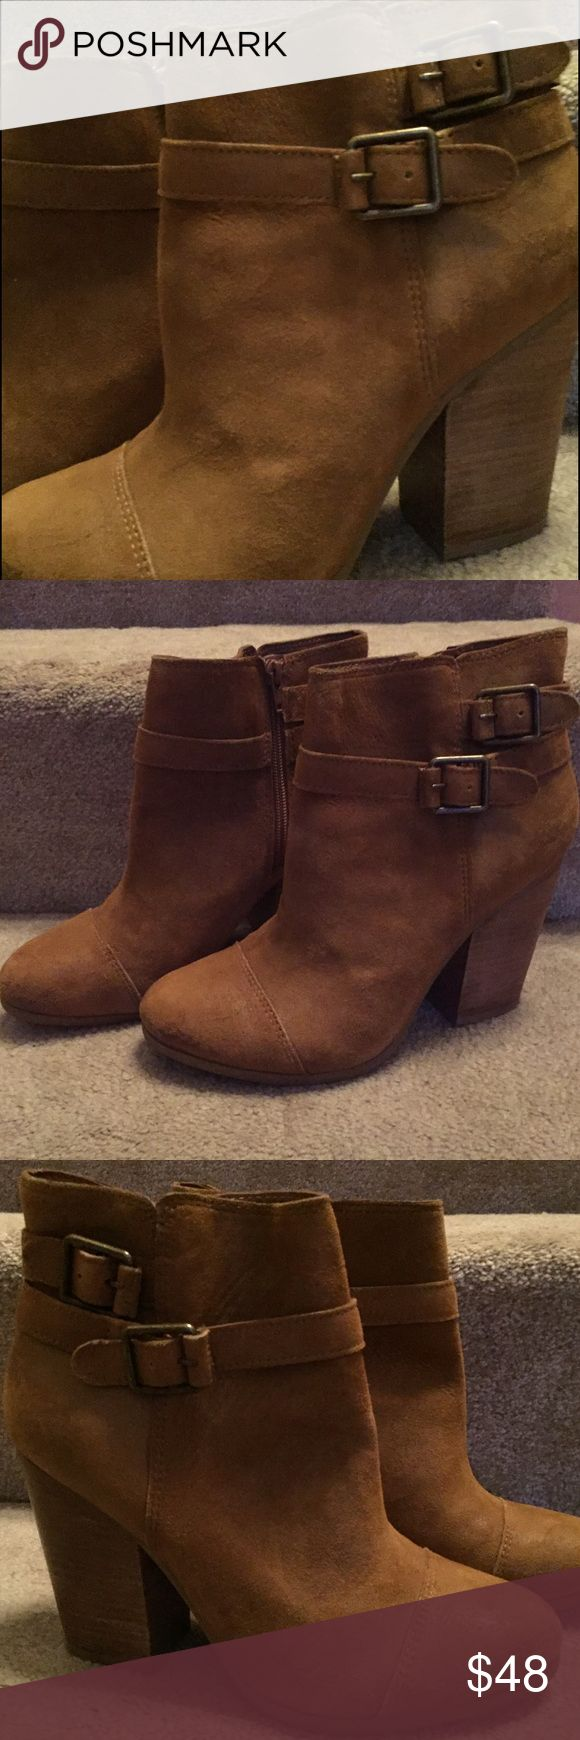 Dark Tan Light Brown NWOT lucky suede booties 9.5 Dark Tan Light Brown NWOT lucky suede booties 9.5. Super comfy and soft. Inside ankle zip. Store display, no box. Lucky Brand Shoes Ankle Boots & Booties